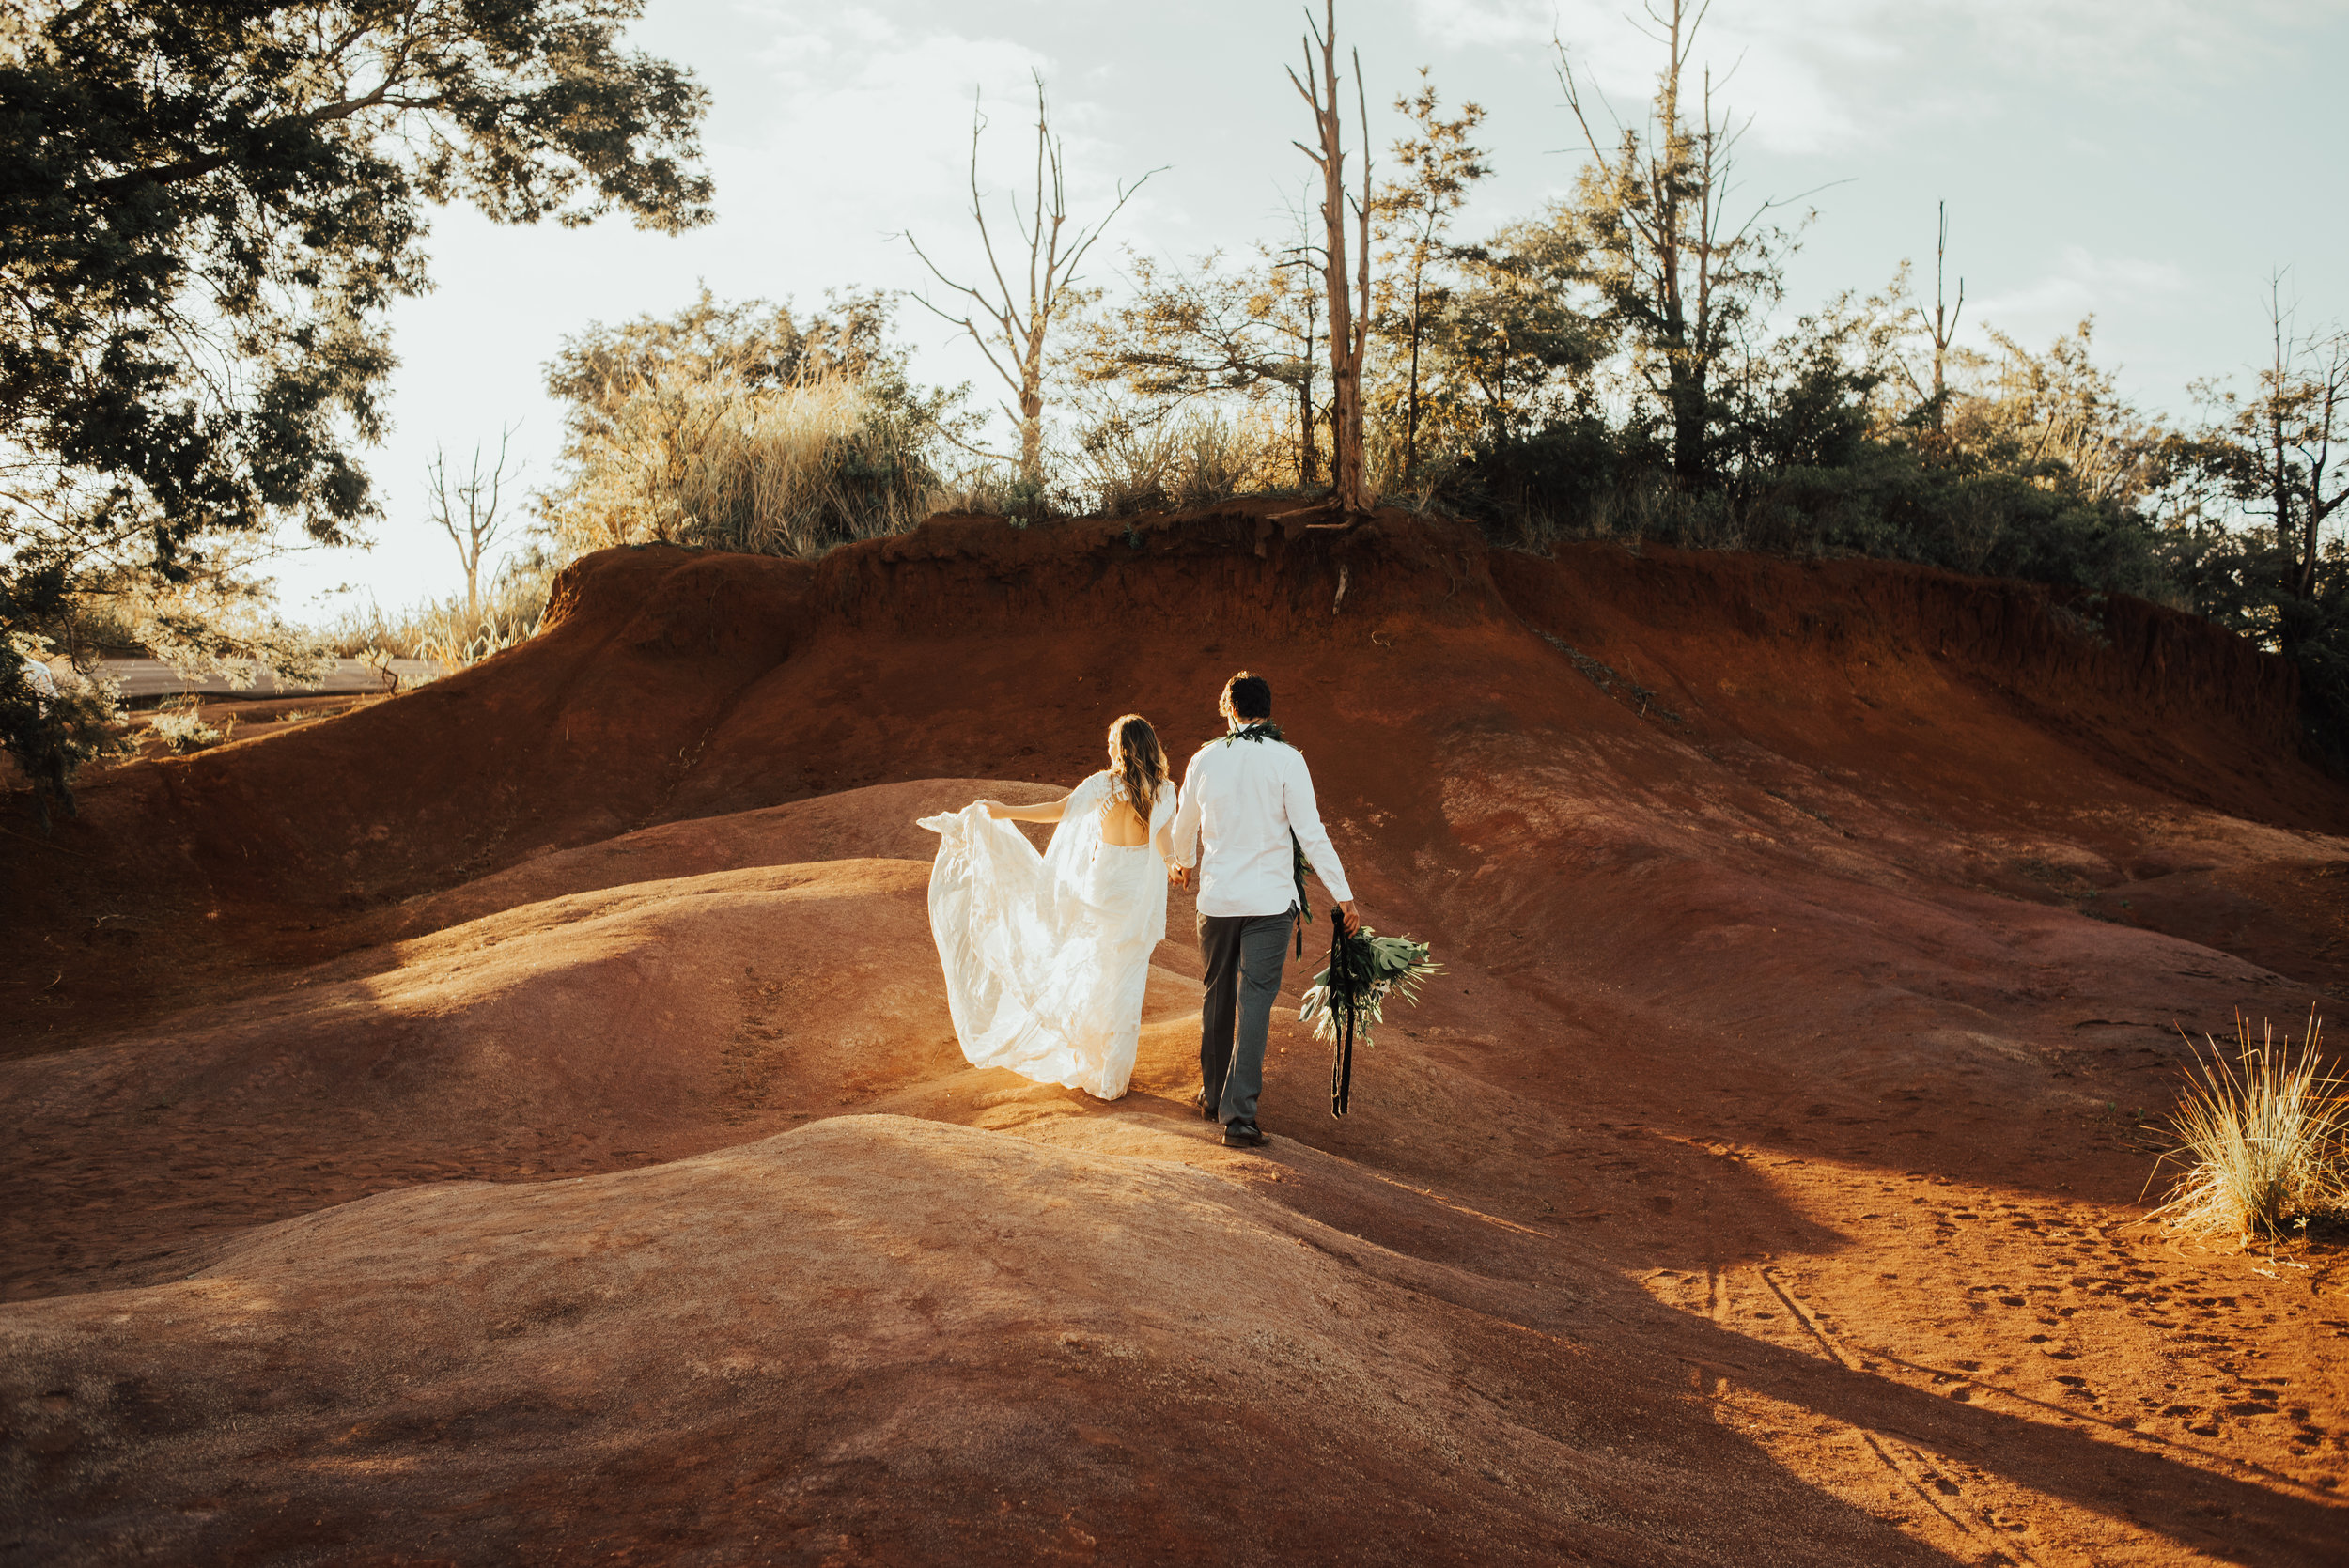 Waimea Canyon Elopement by SB Photographs01101001000111001110110110100100100001101001DSC_5928DSC_59280001101.jpg